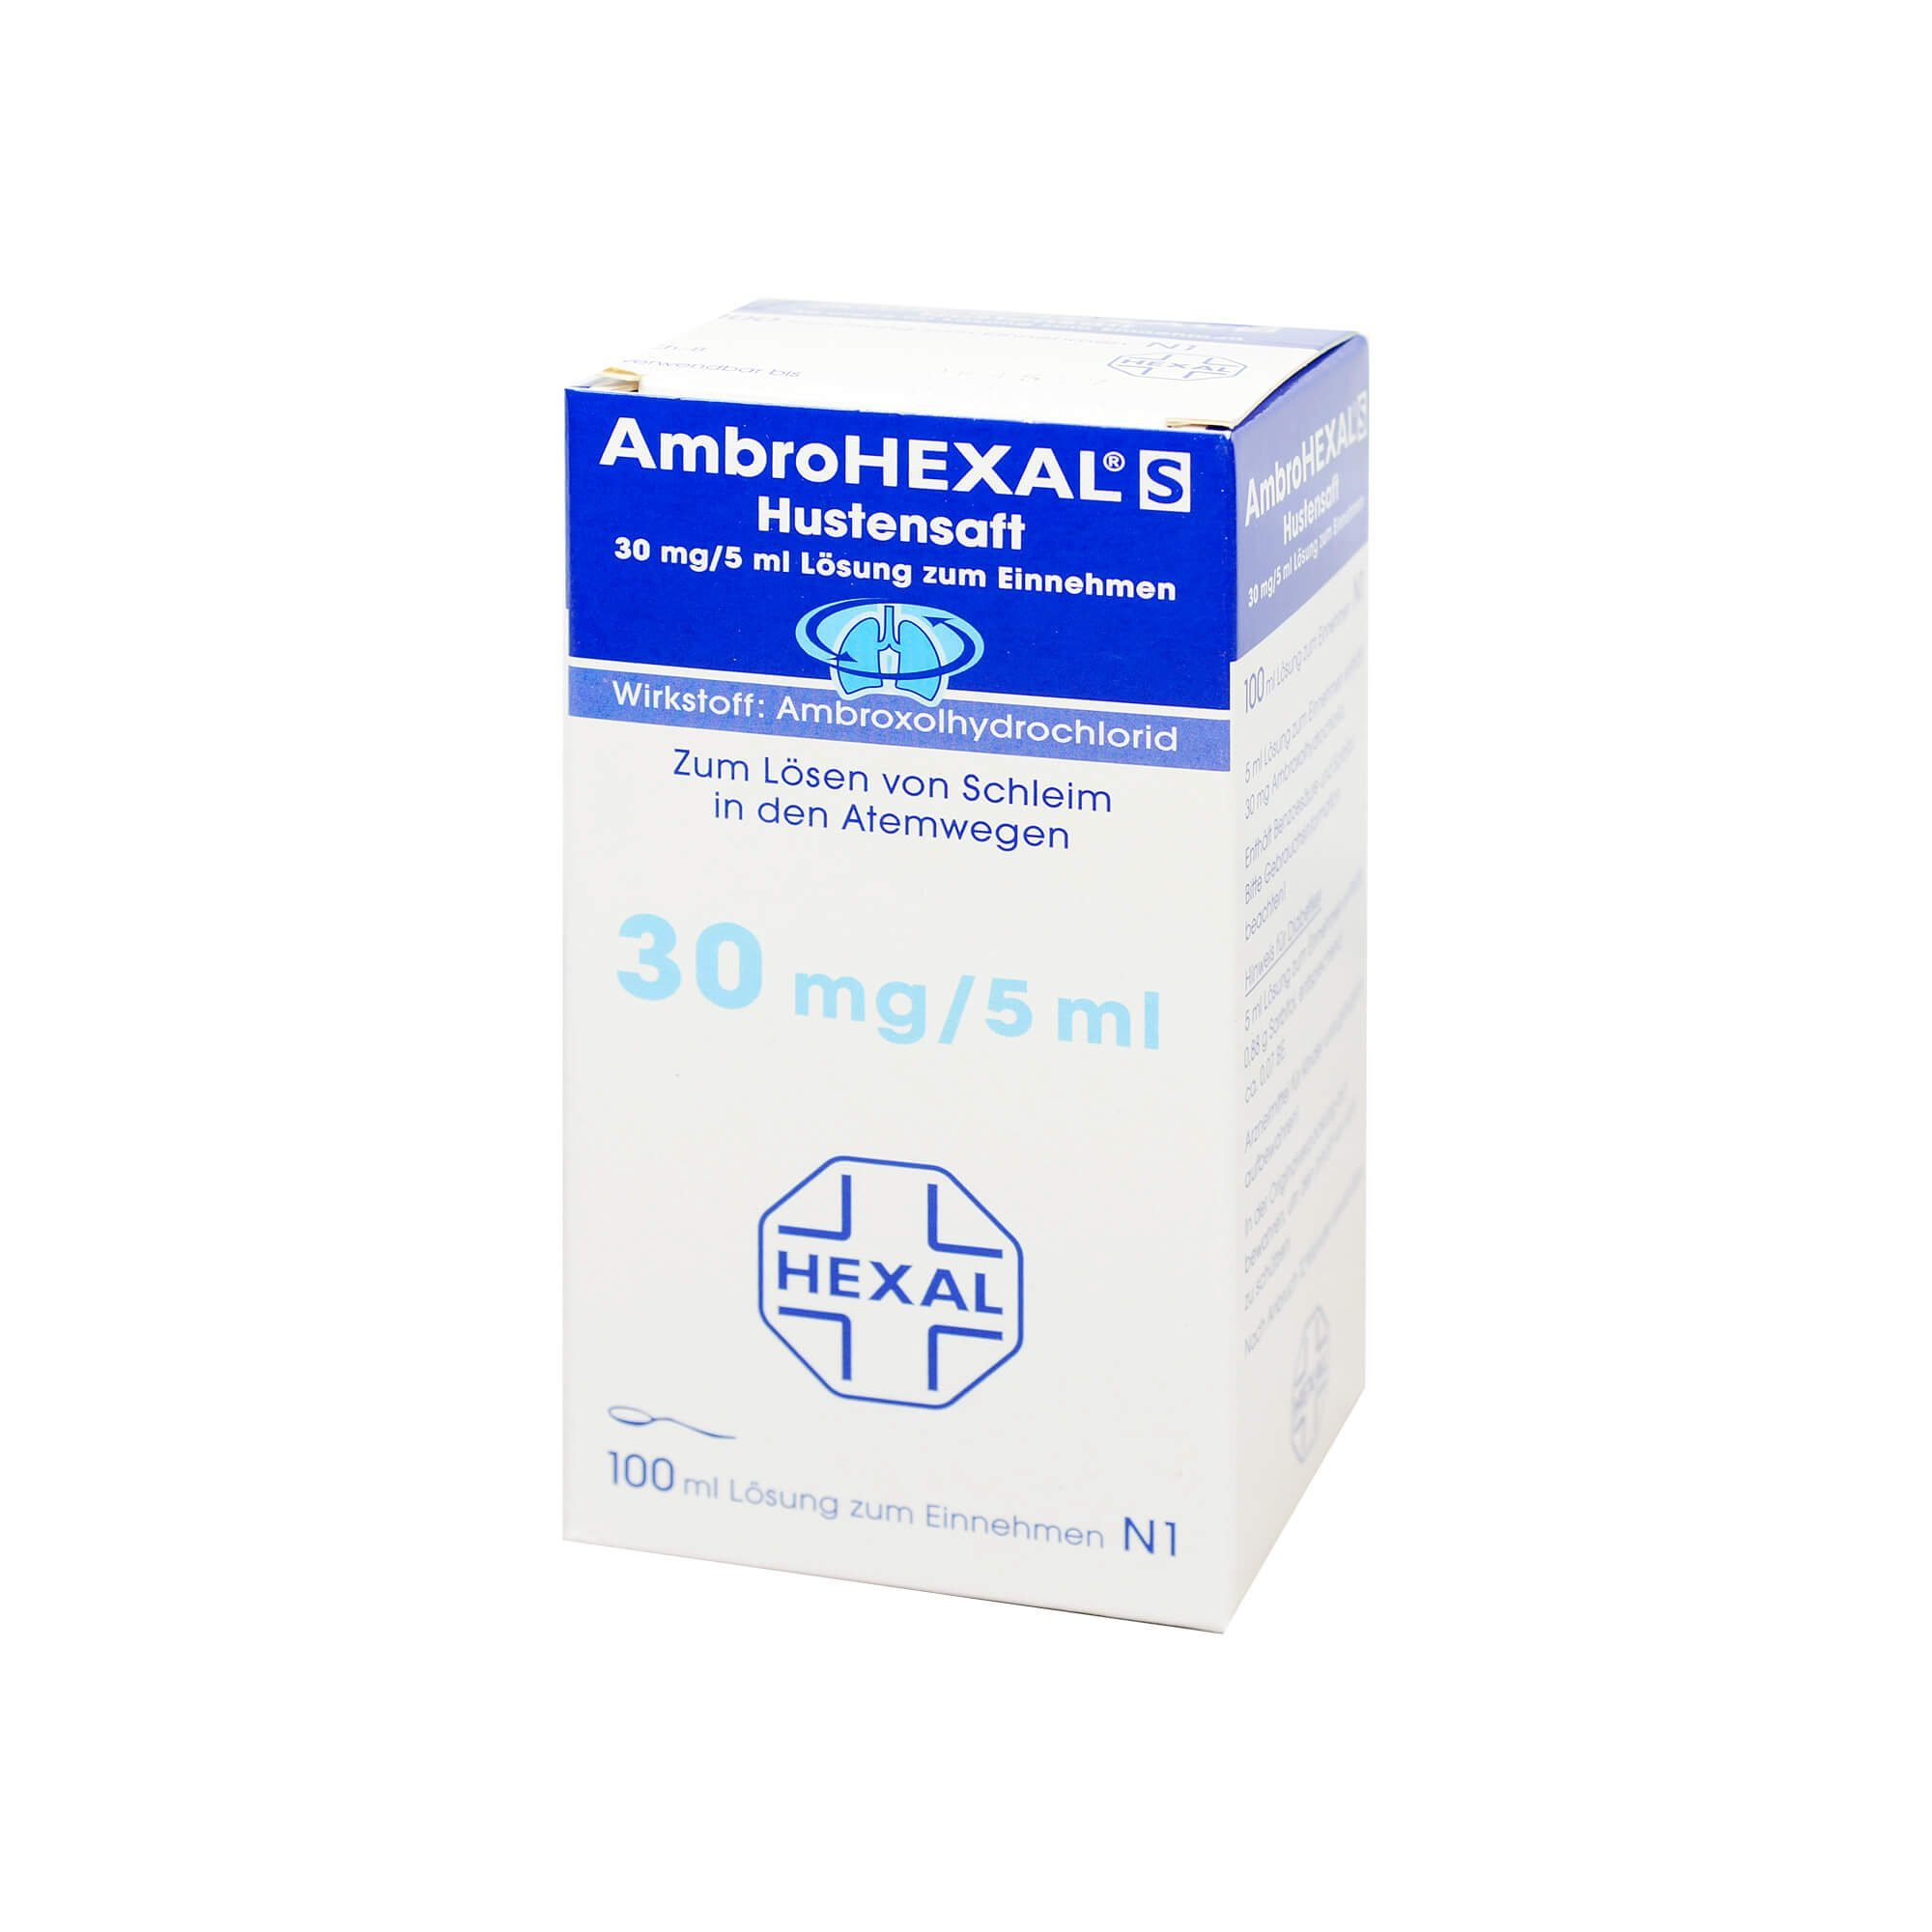 AmbroHEXAL S Hustensaft 30 mg/5 ml, 100 ml